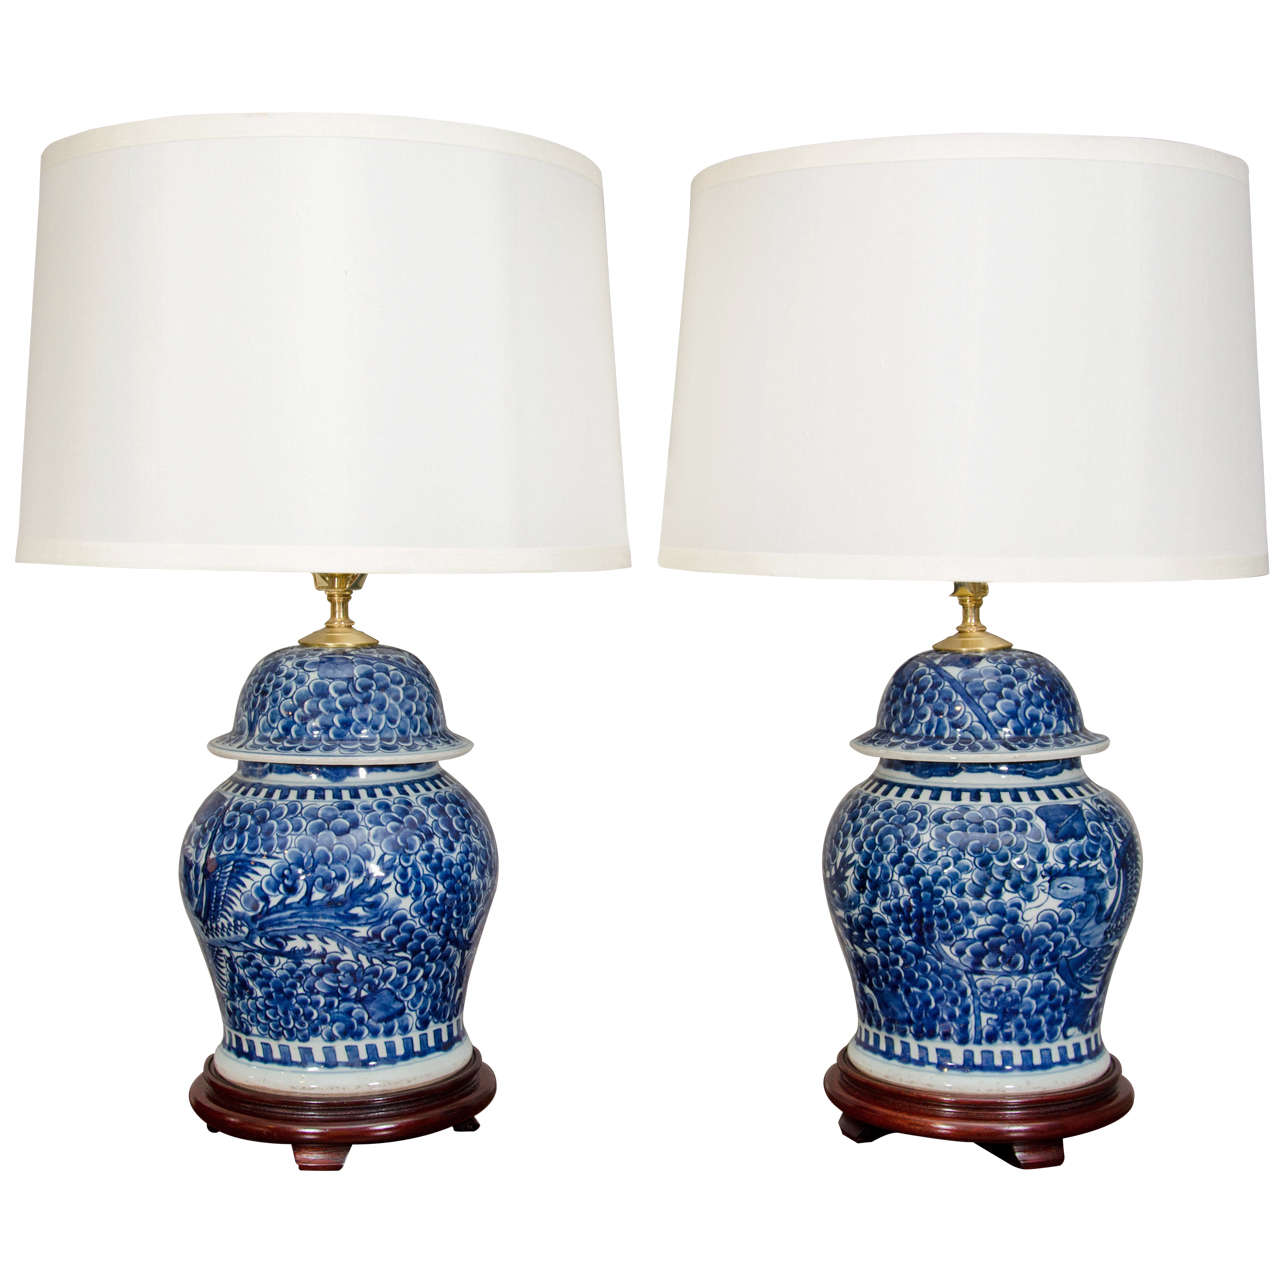 Home Decor Antiques Pair Of Blue And White Porcelain Chinese Temple Jar Lamps